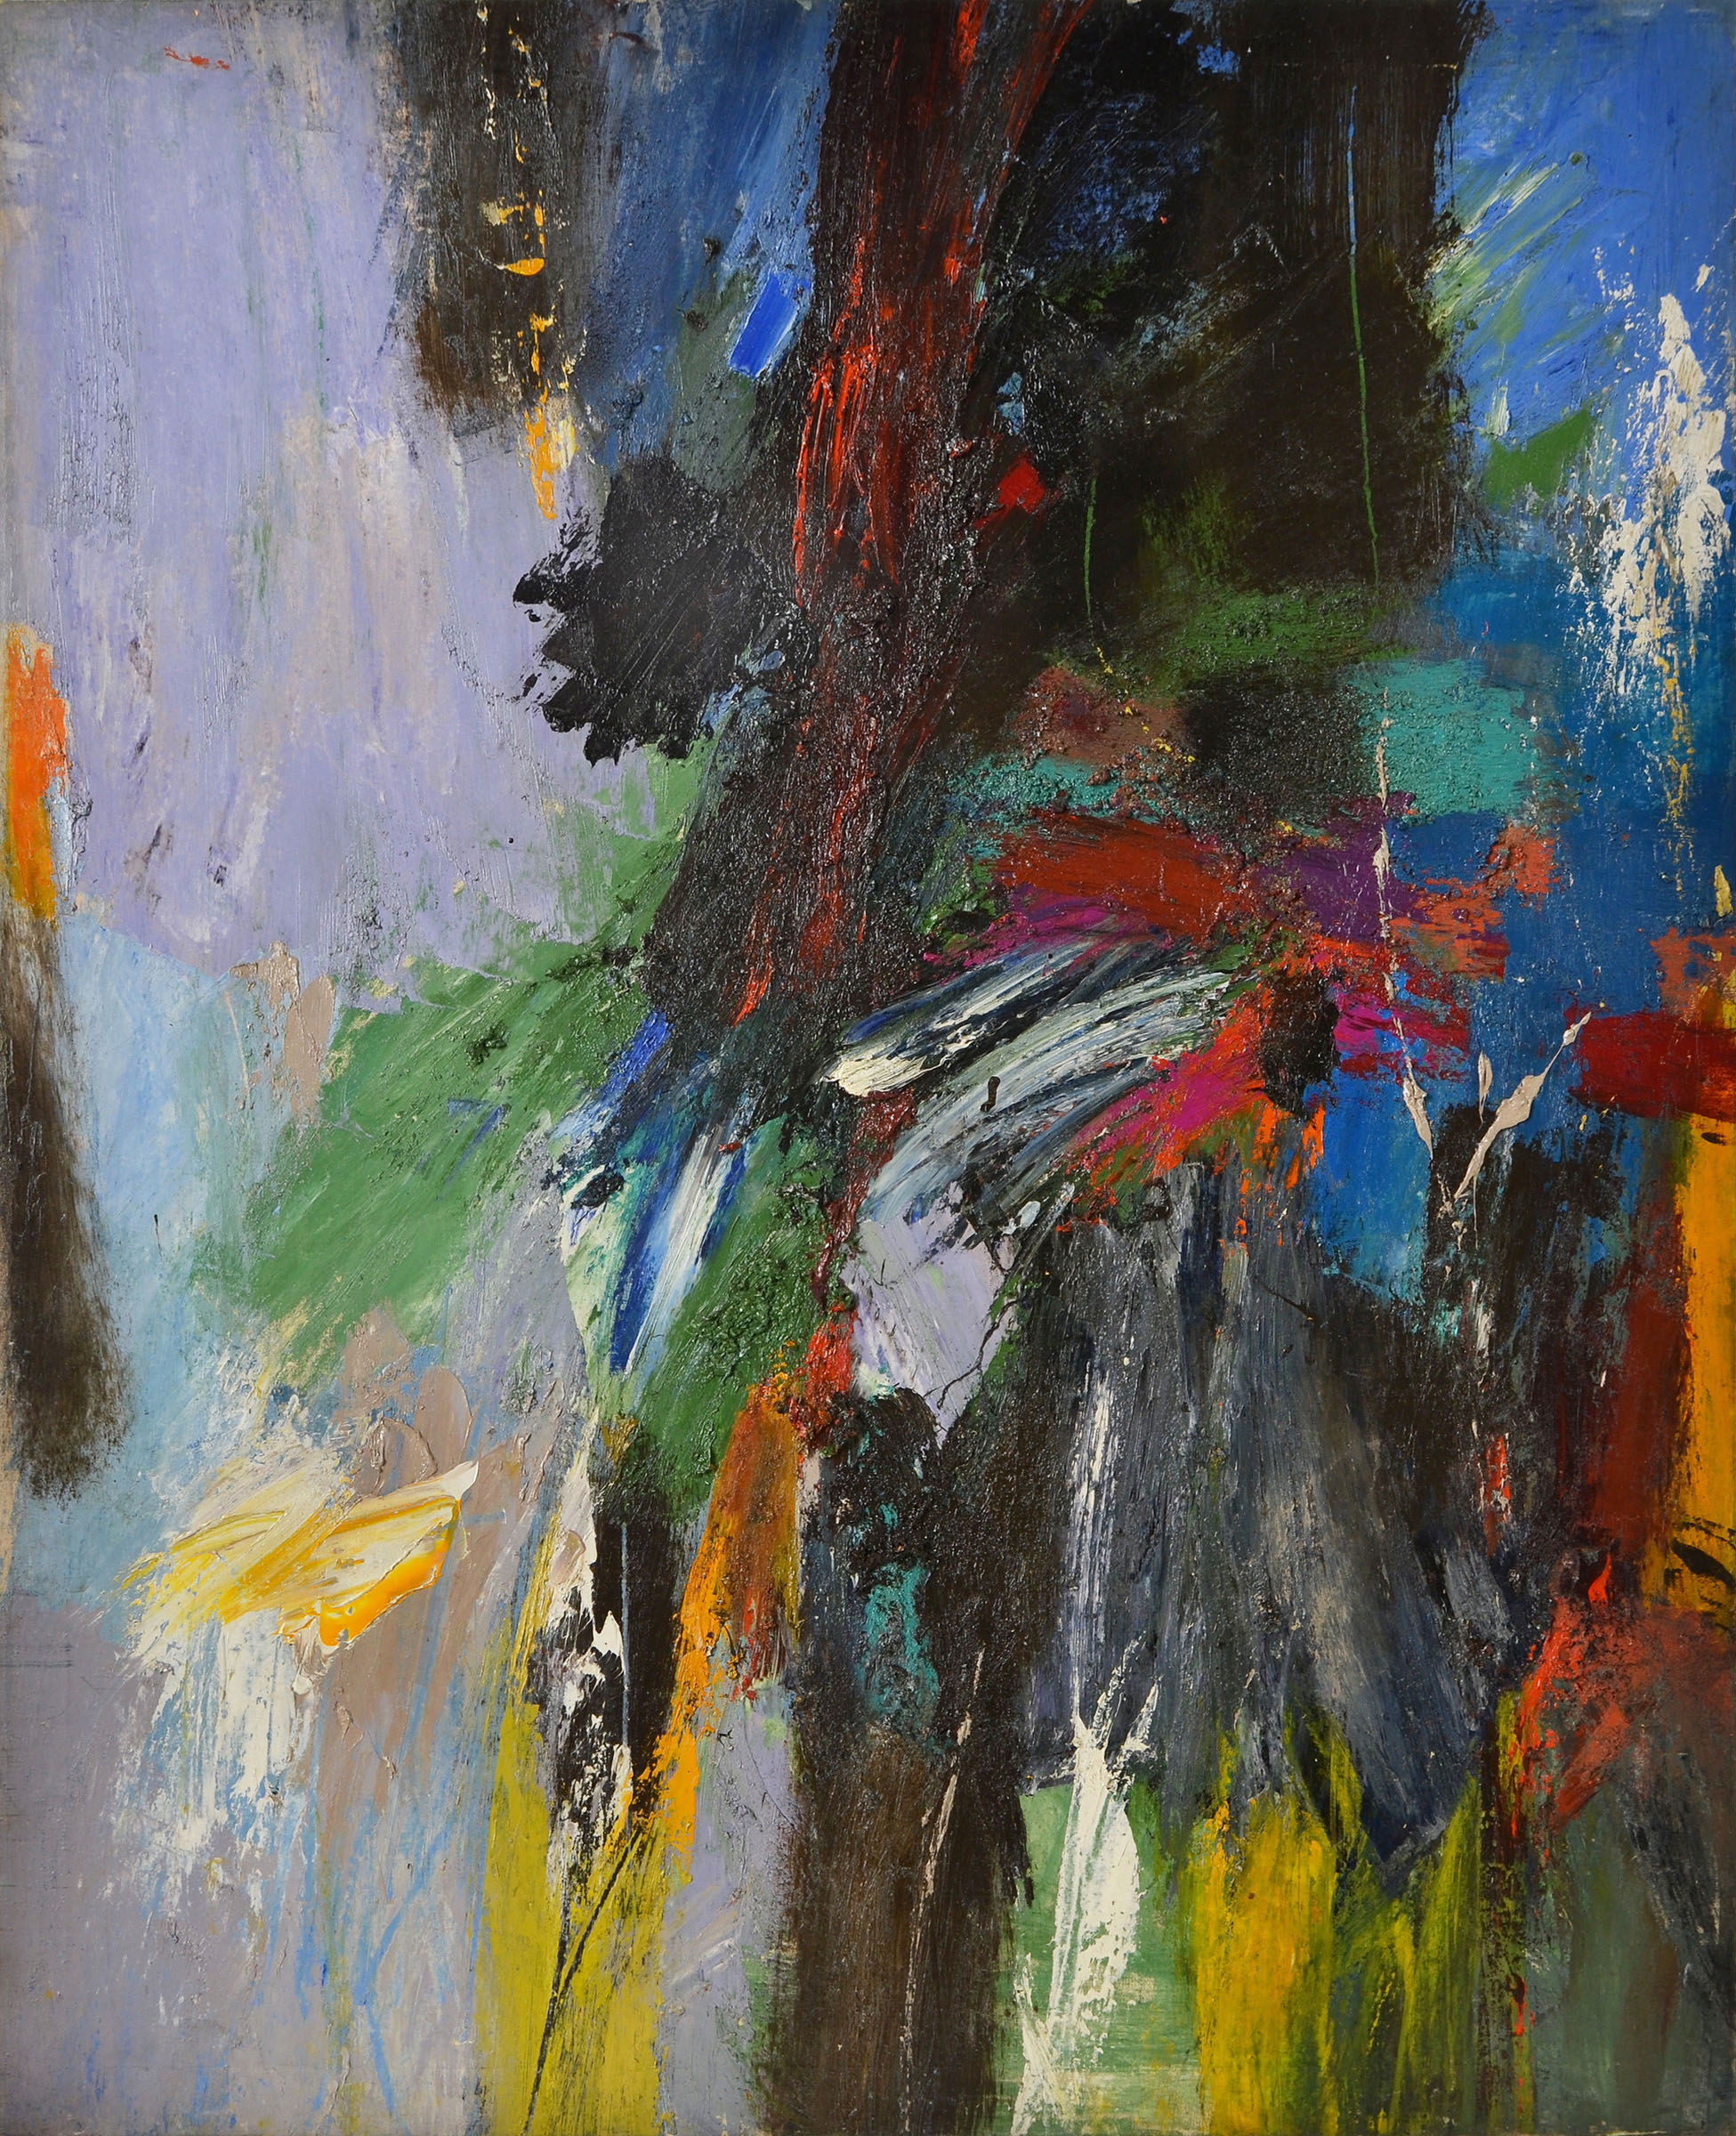 Untitled   ,  oil on canvas, c. 1950s, 49 x 40 inches